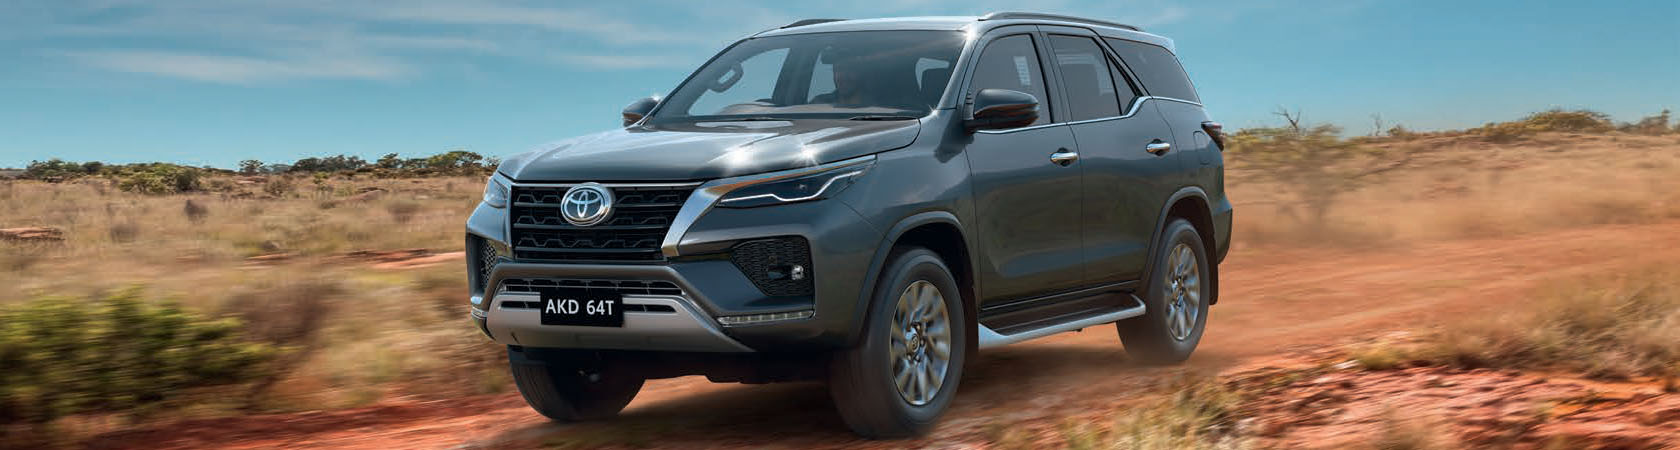 Windsor Toyota Fortuner